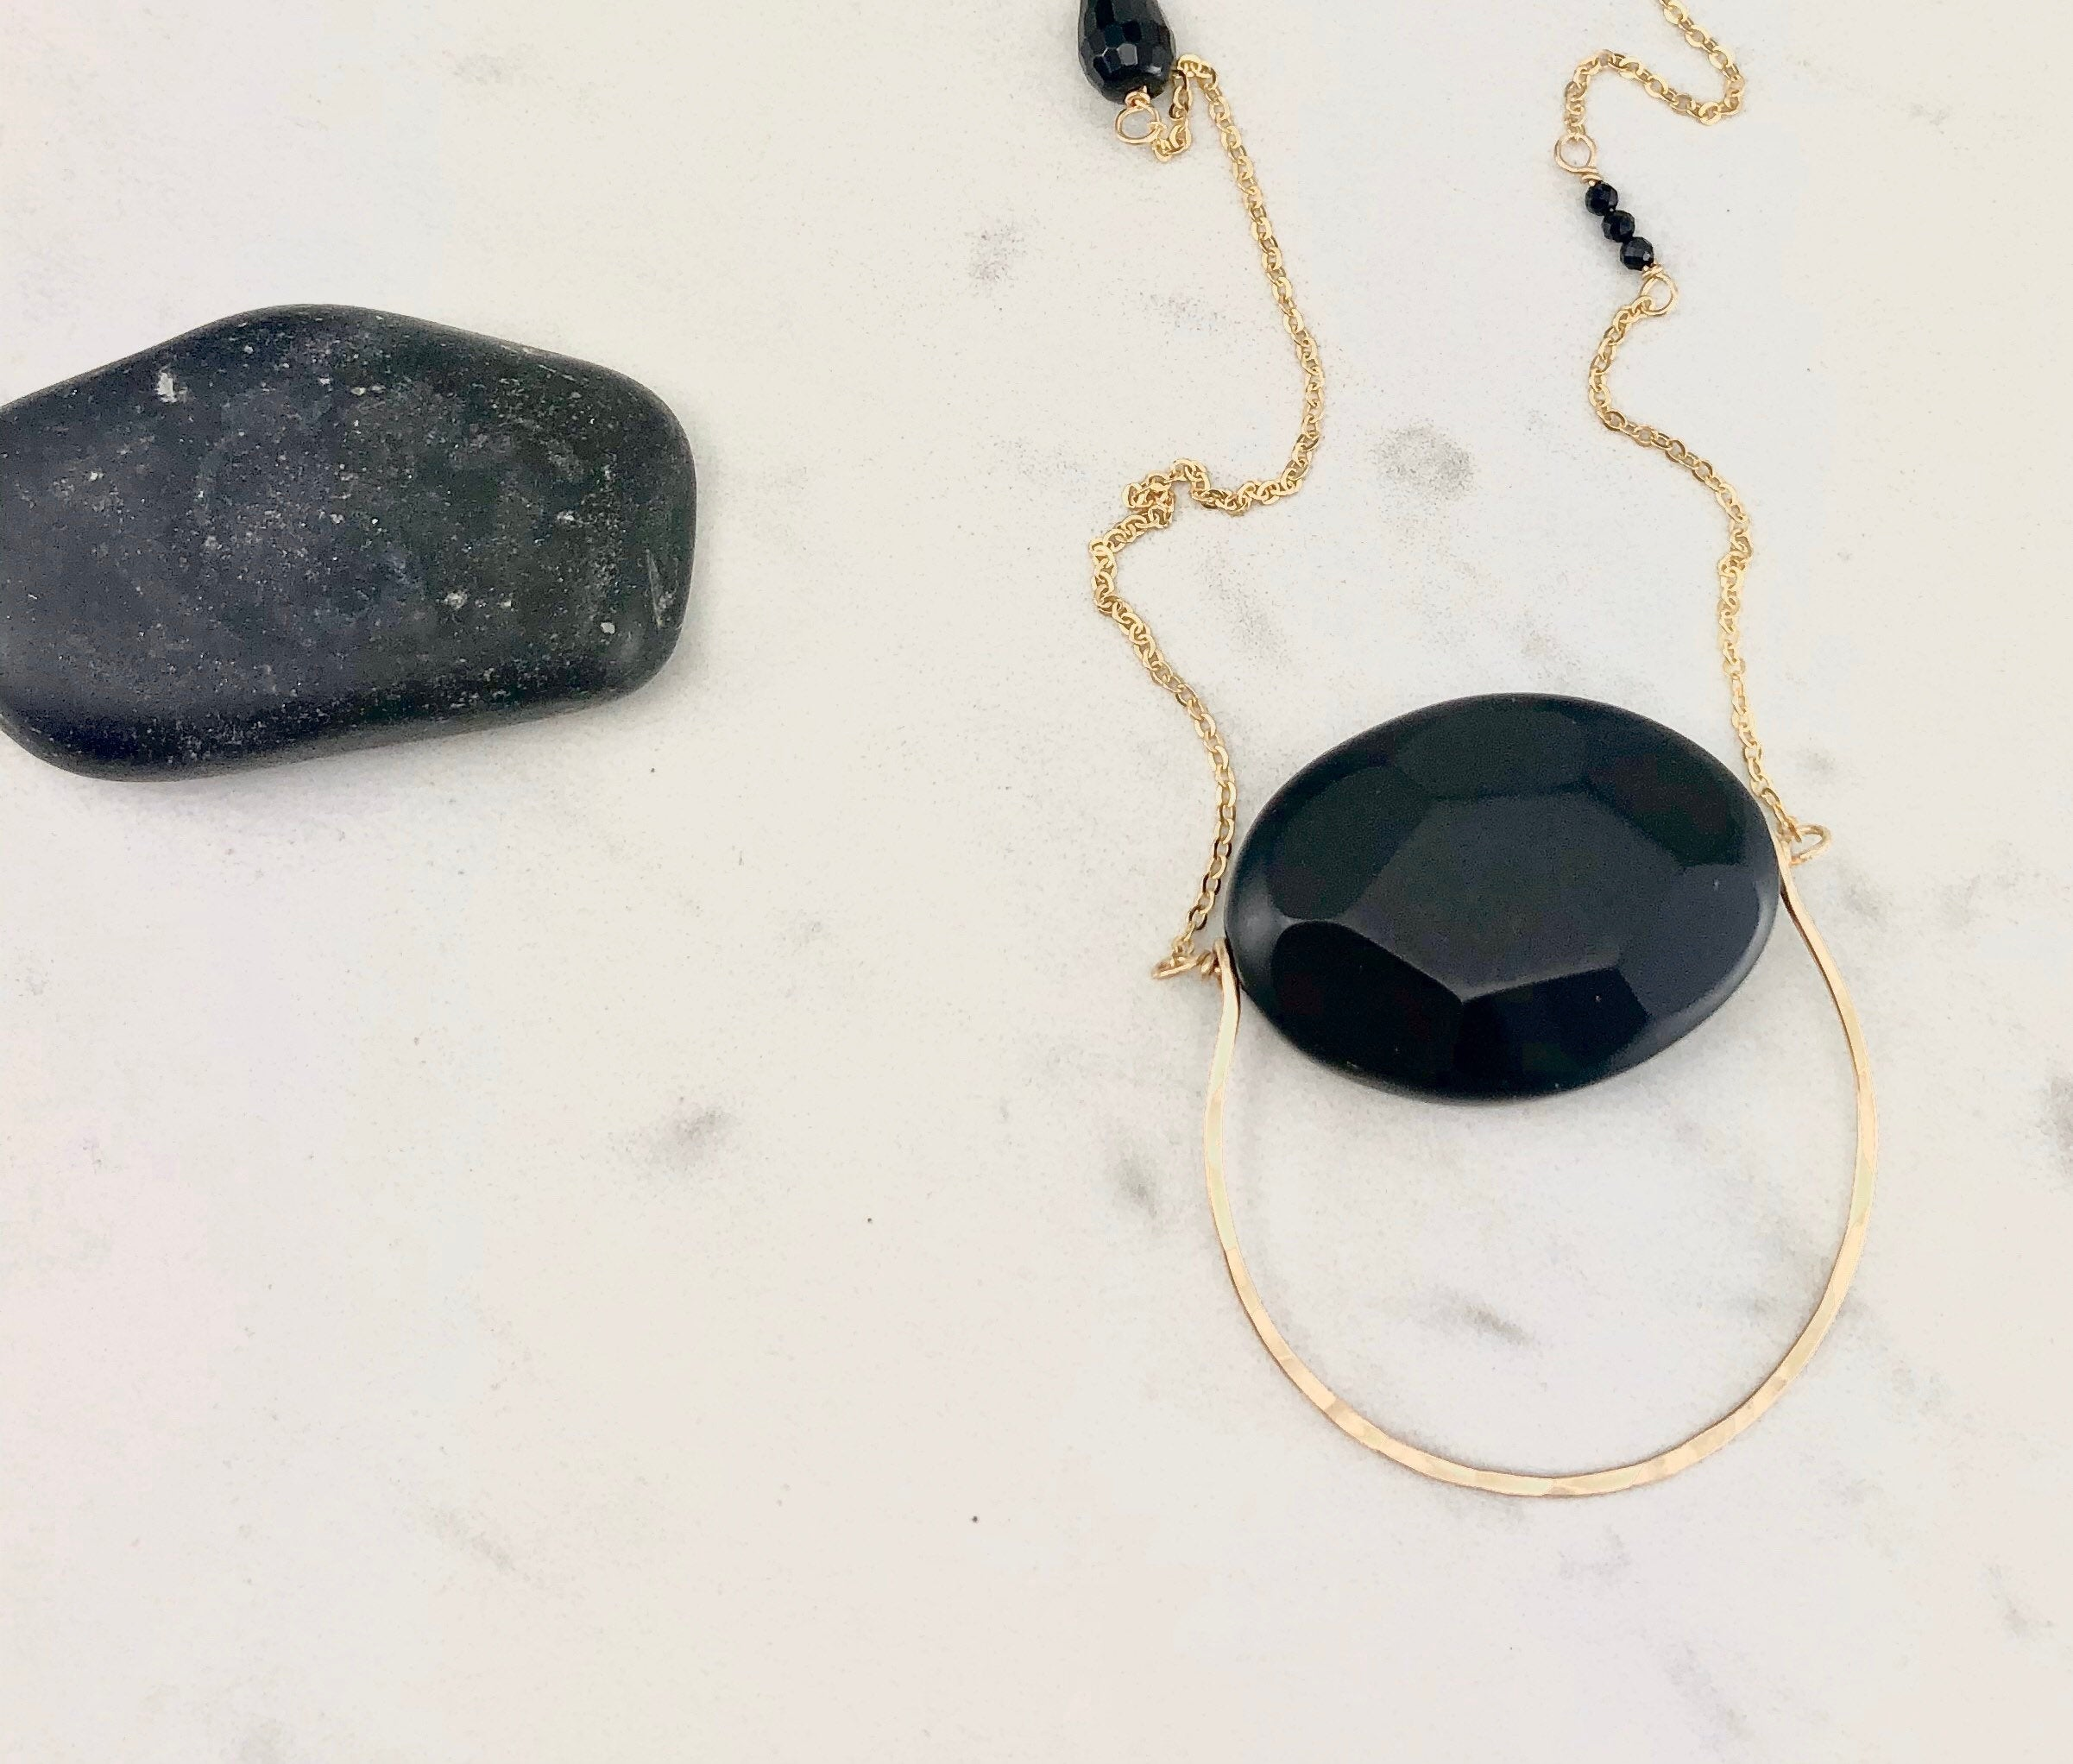 Handmade Gold and Onyx Swing Pendant